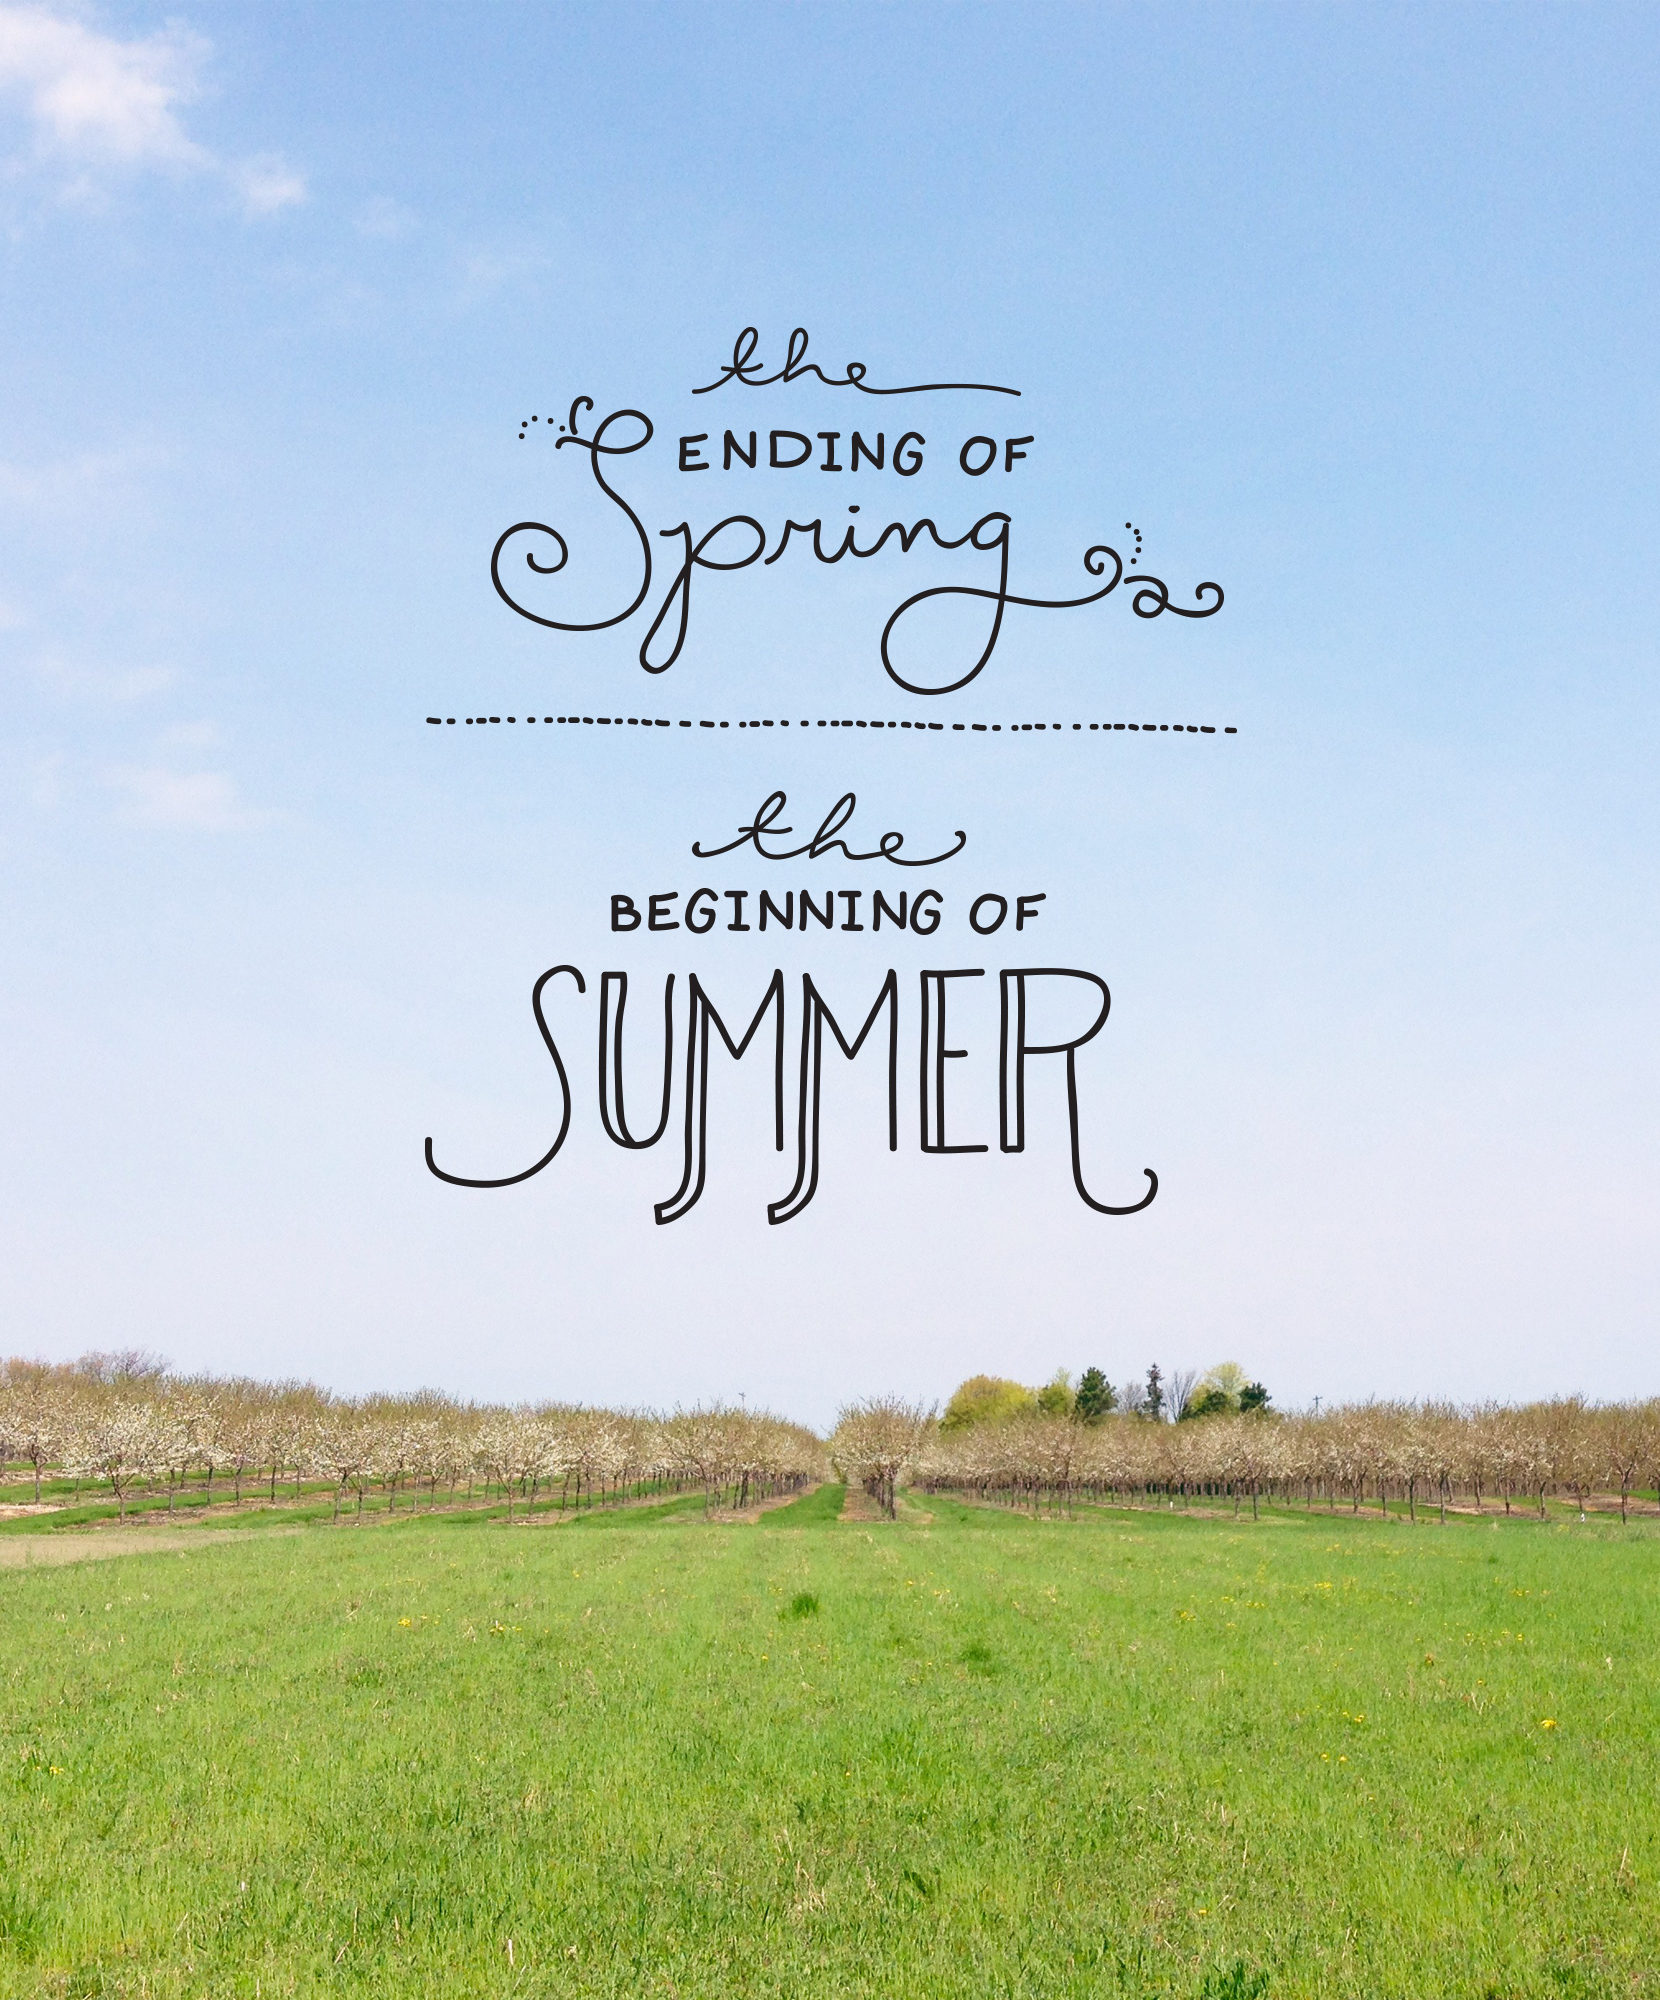 End of Spring and beginning of Summer  |  The Fresh Exchange